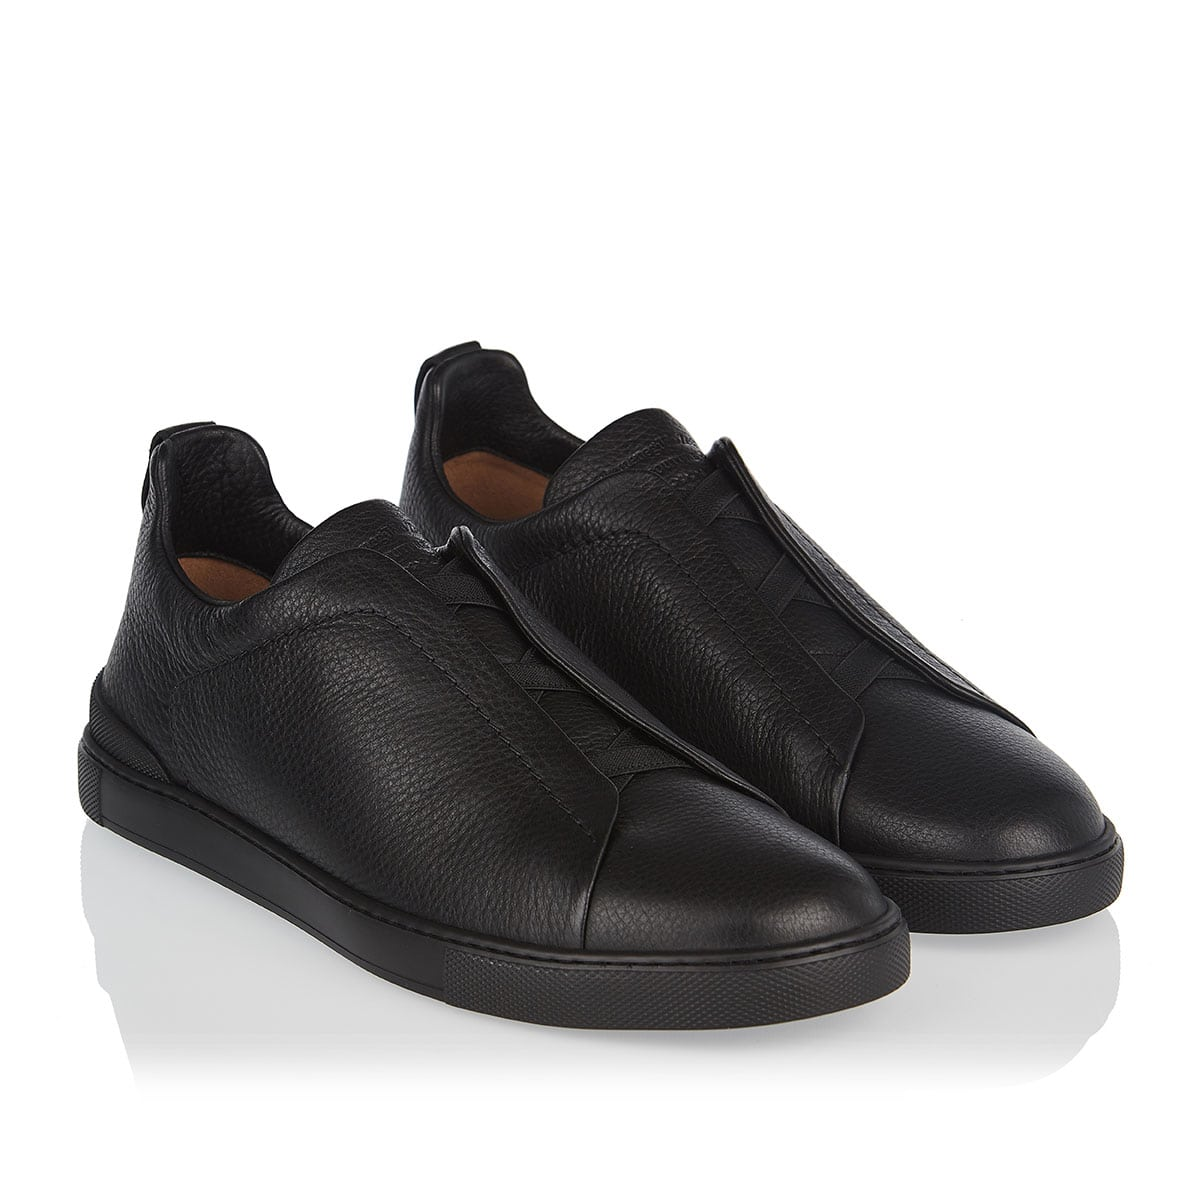 Triple-Stitch slip-on leather sneakers